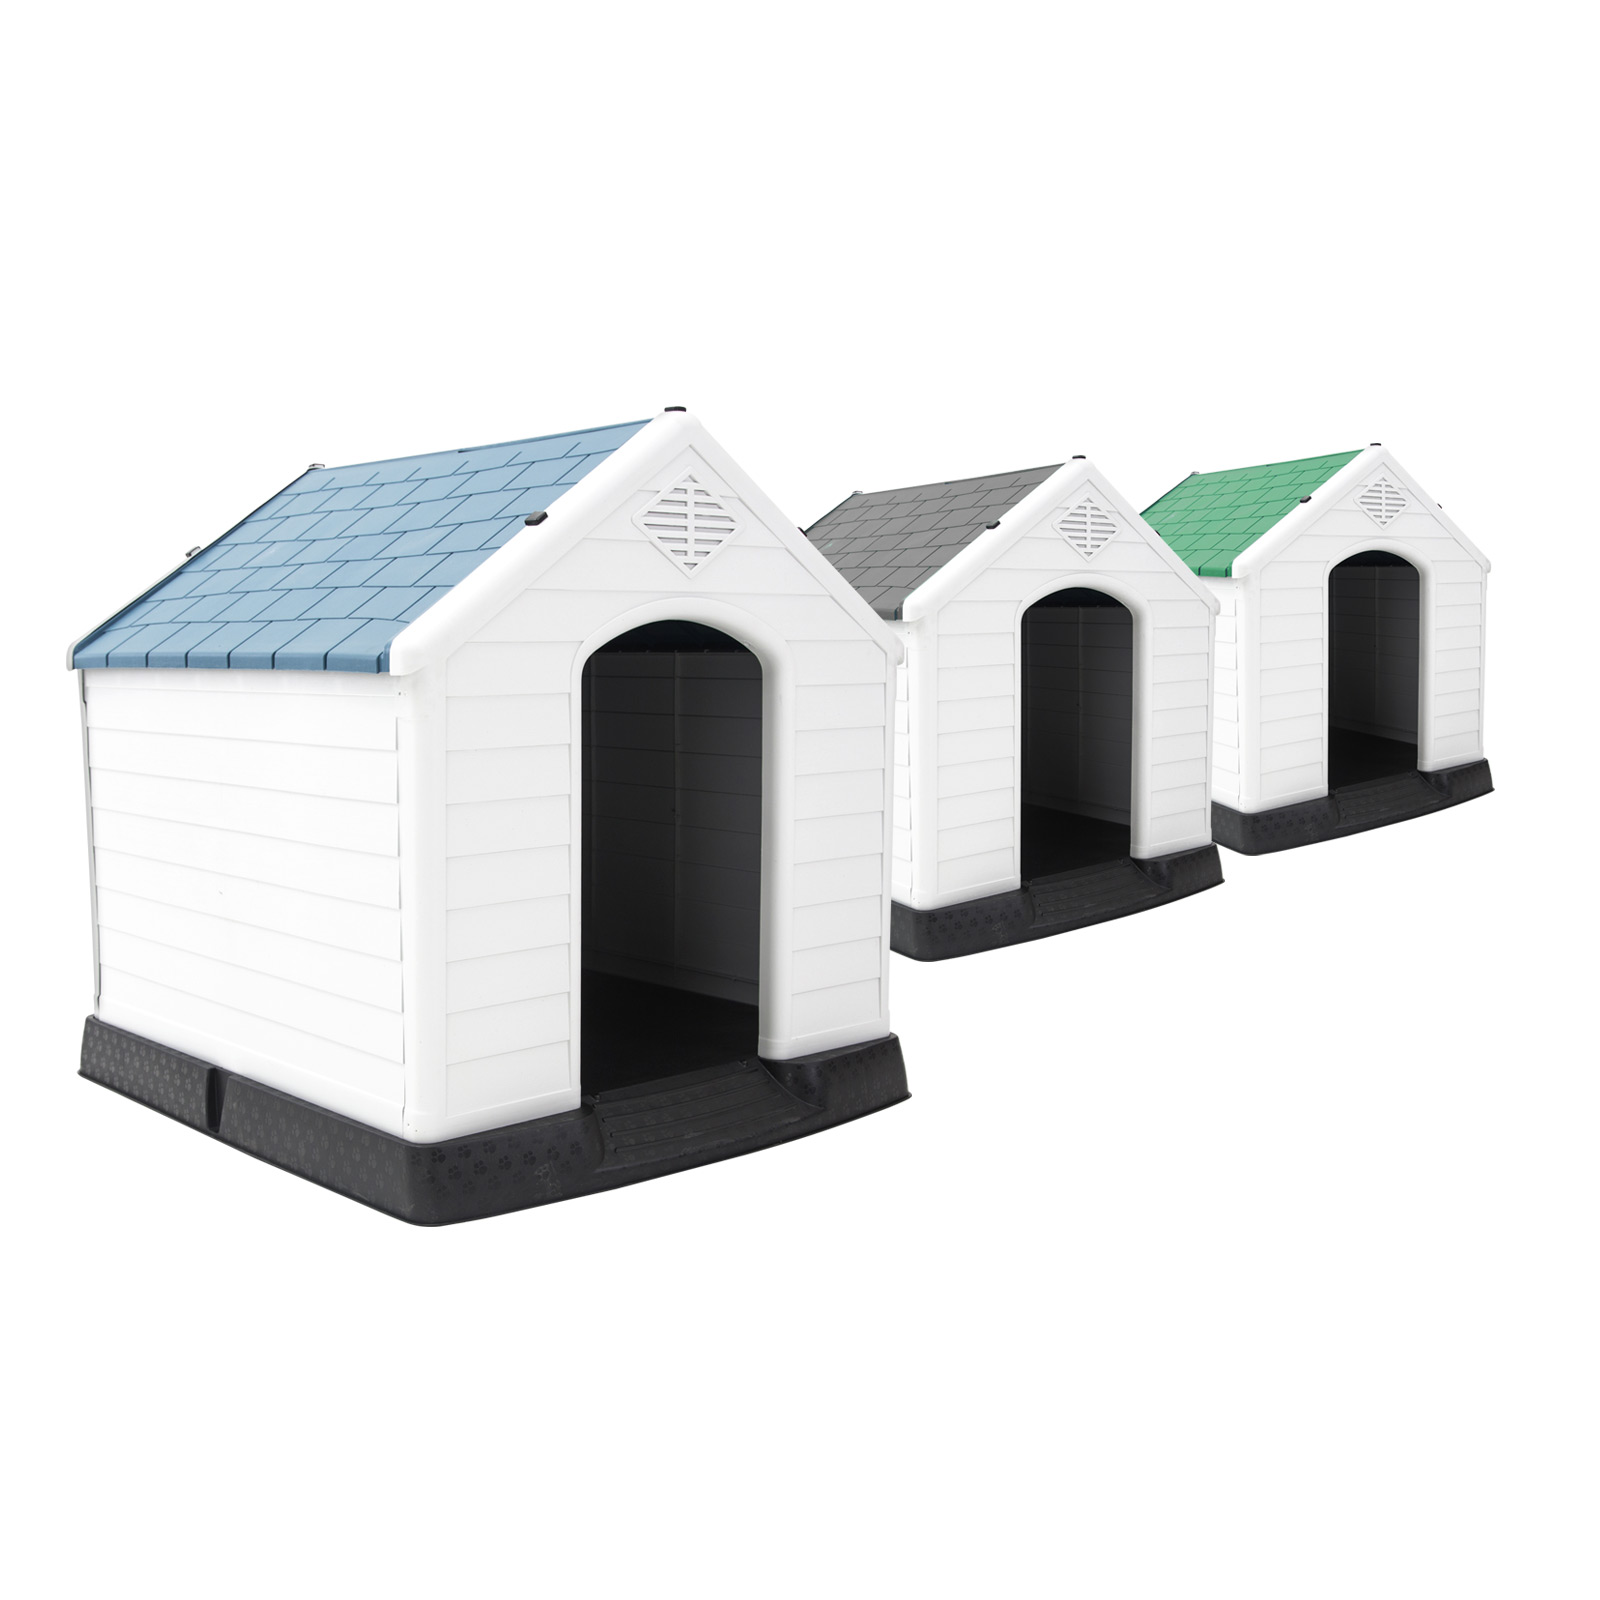 Plastic Dog Kennel COHEN XL - 105 x 97 x 99cm